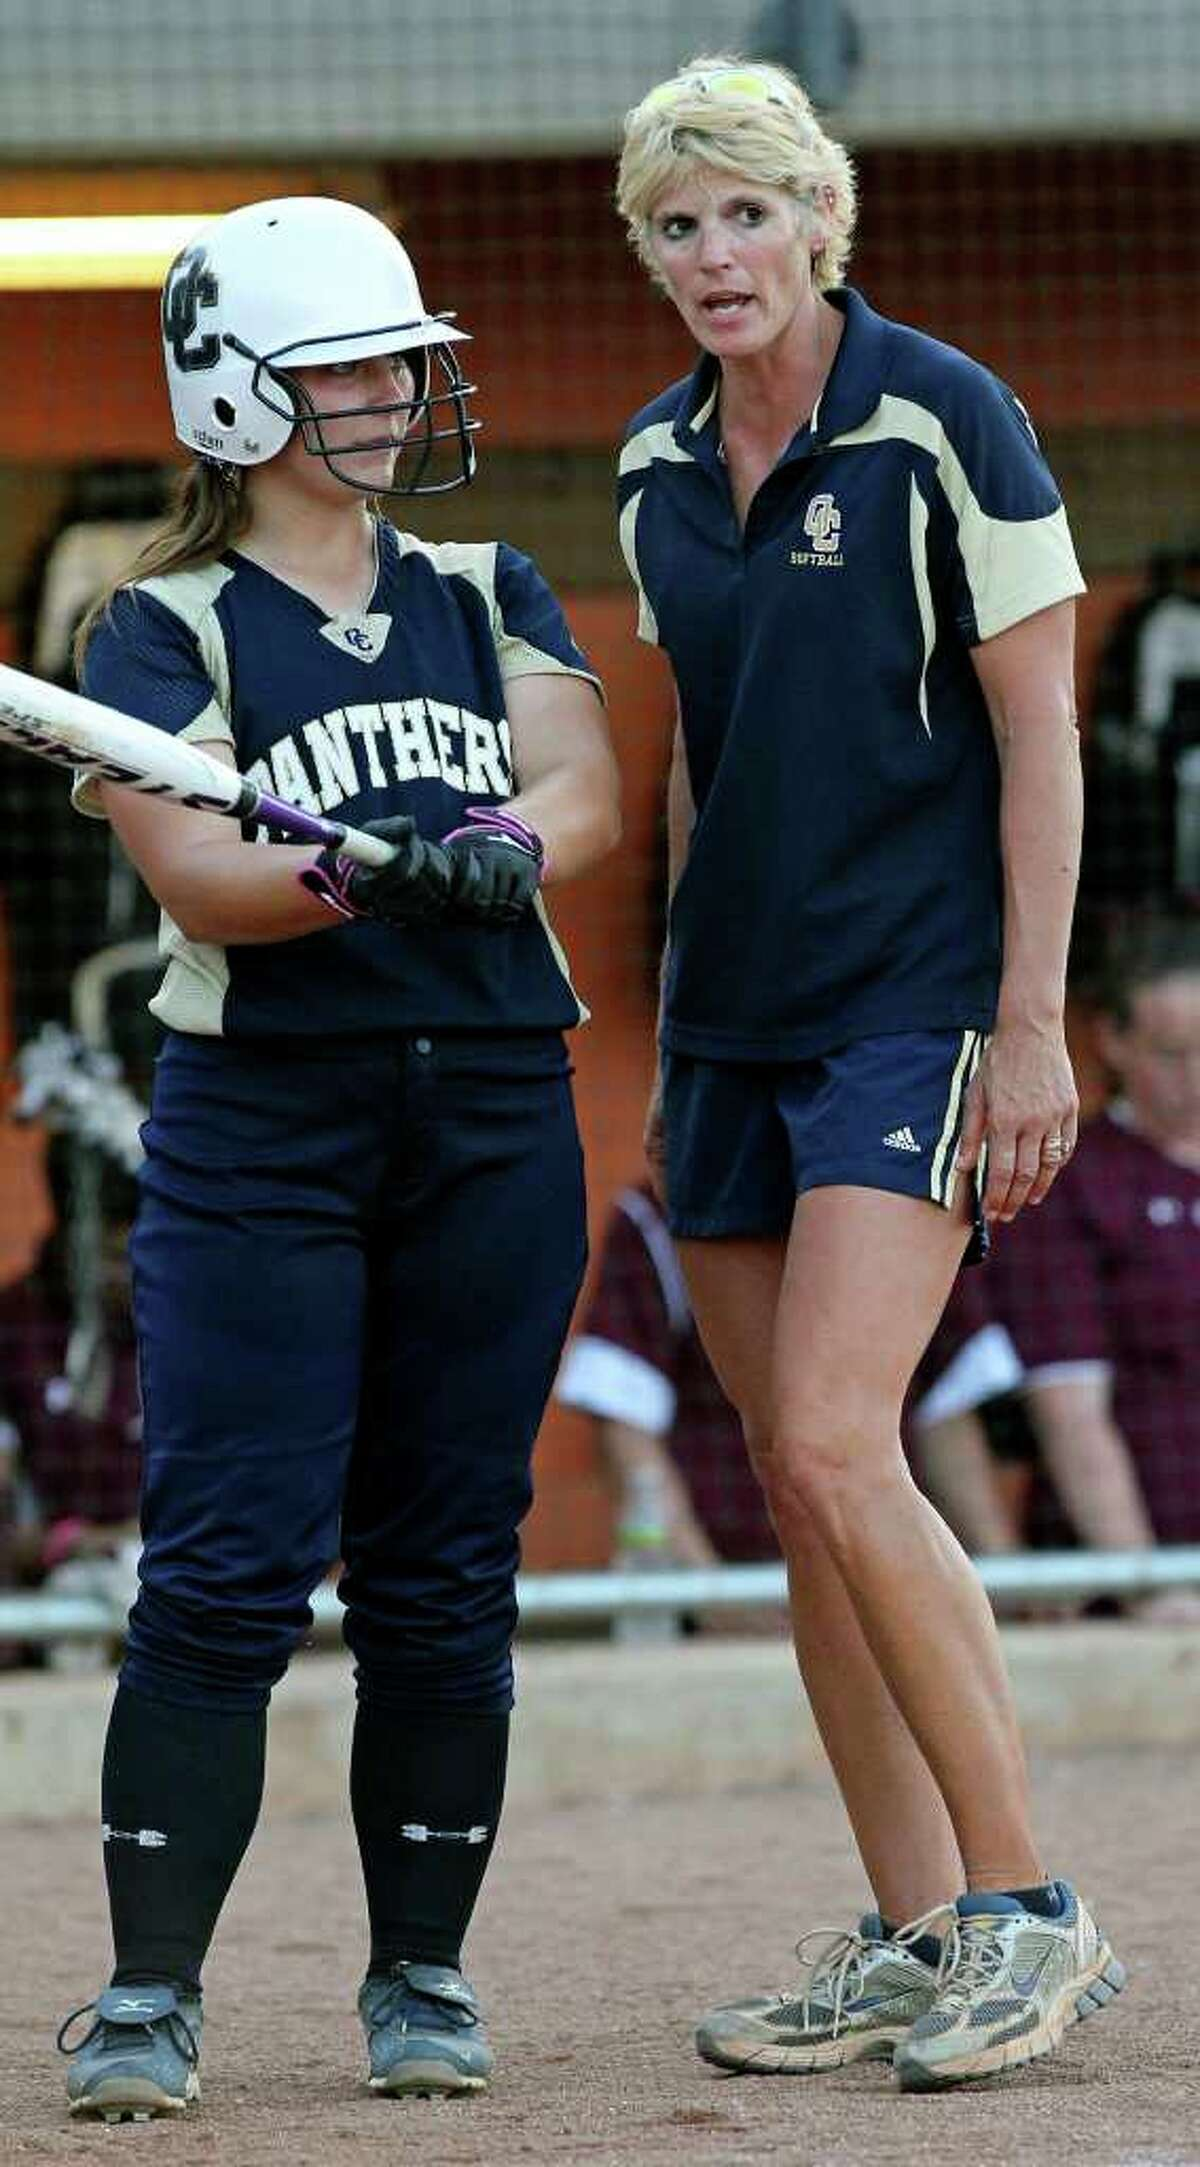 Coach Anne Lewis gives batting instructions as O'Connor plays Plano in the state softball semifinals at McCombs Field in Austin on June 3, 2011. Tom Reel/Staff